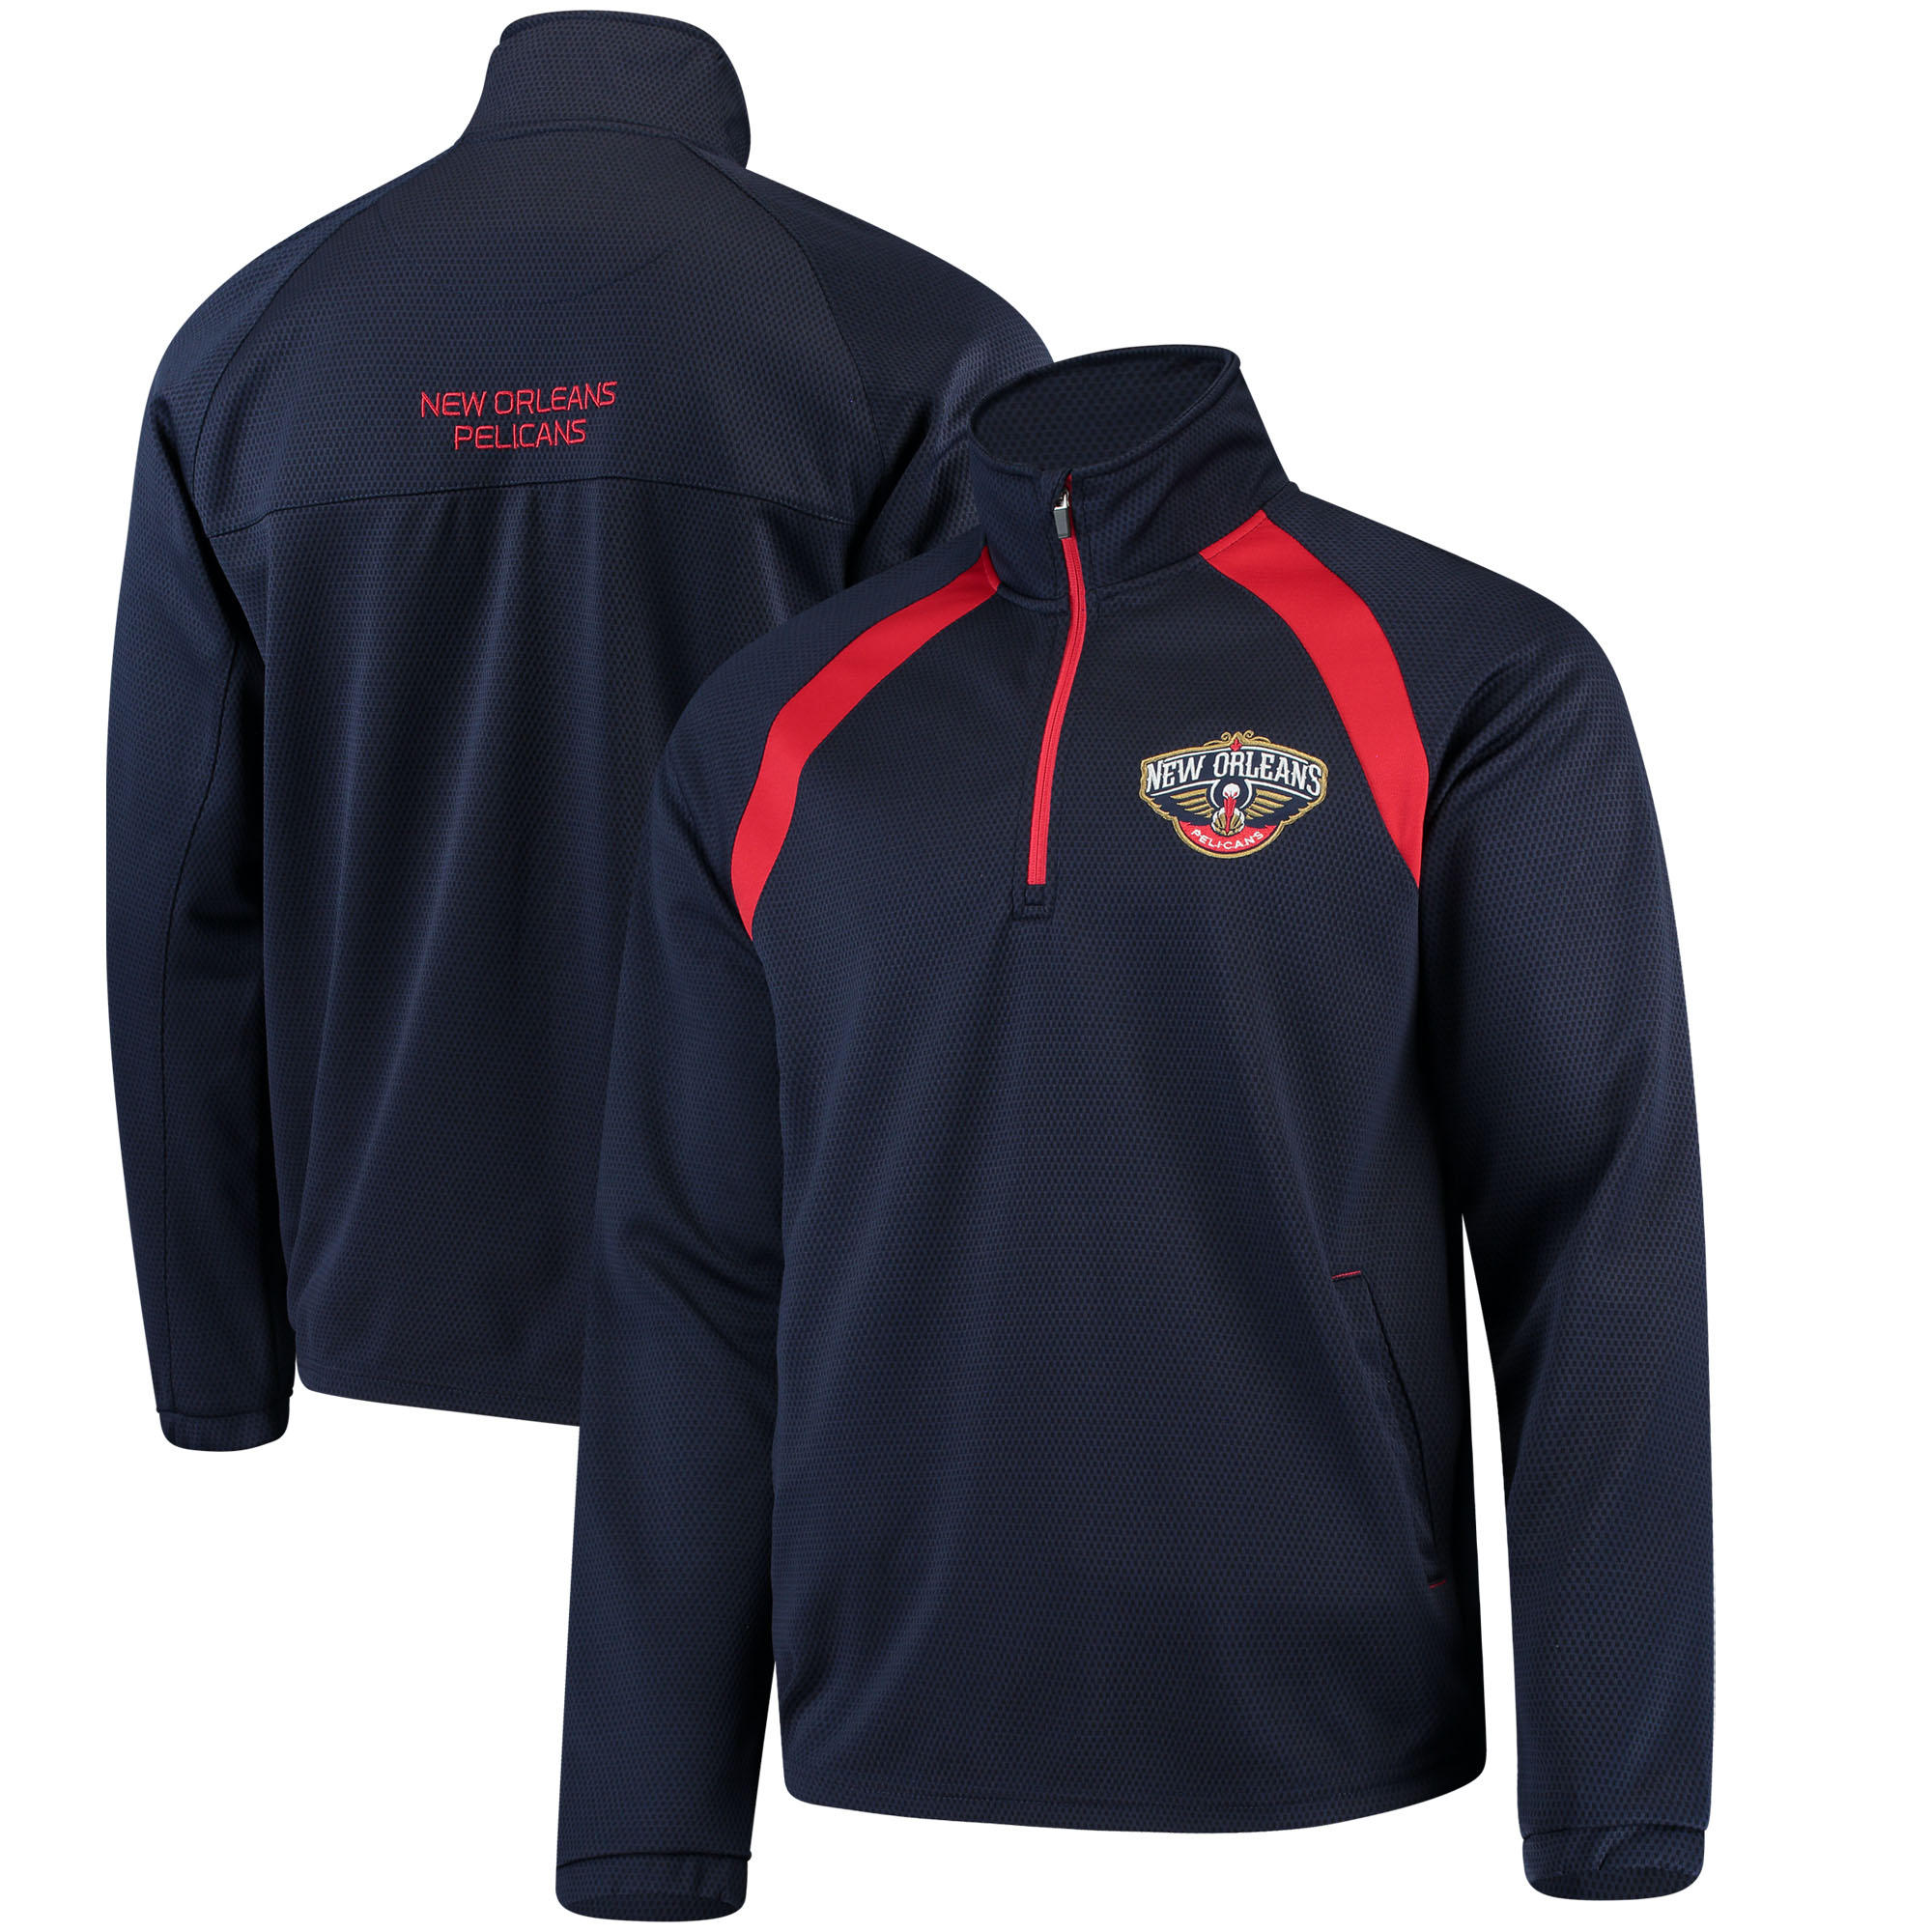 New Orleans Pelicans G-III Sports by Carl Banks High Impact Quarter-Zip Pullover Jacket - Navy